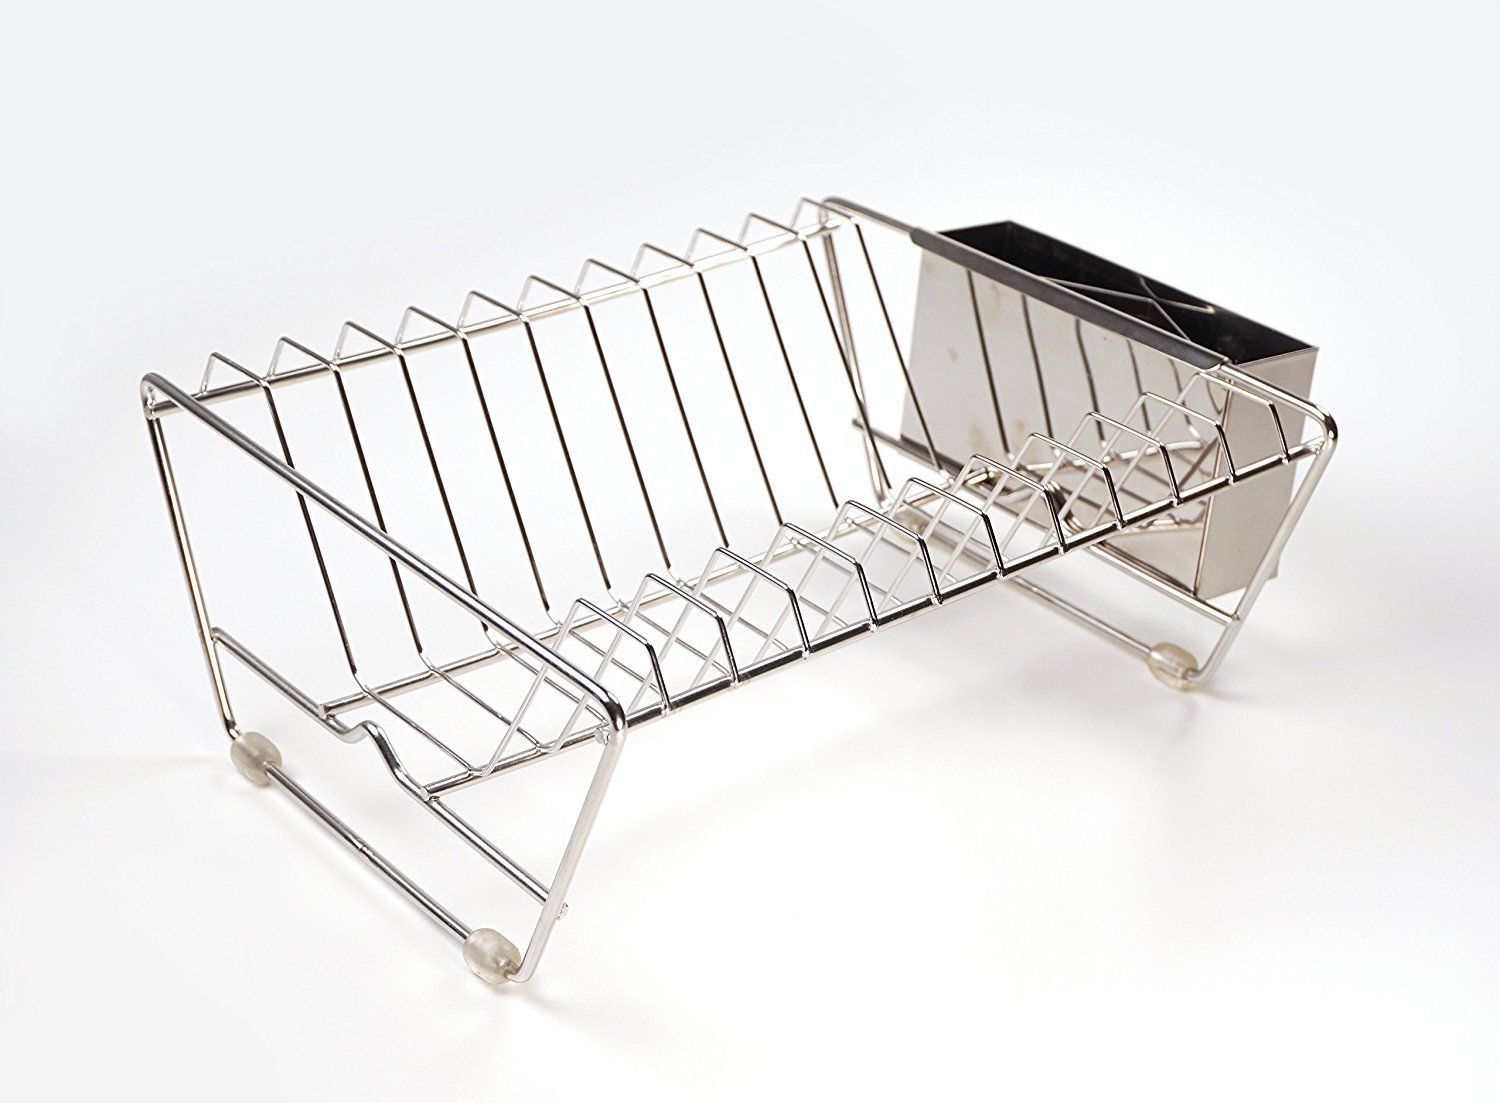 Amazon Drying Rack Best Amazon Rsvp Endurance Stainless Steel Insink Dish Drying Rack Inspiration Design